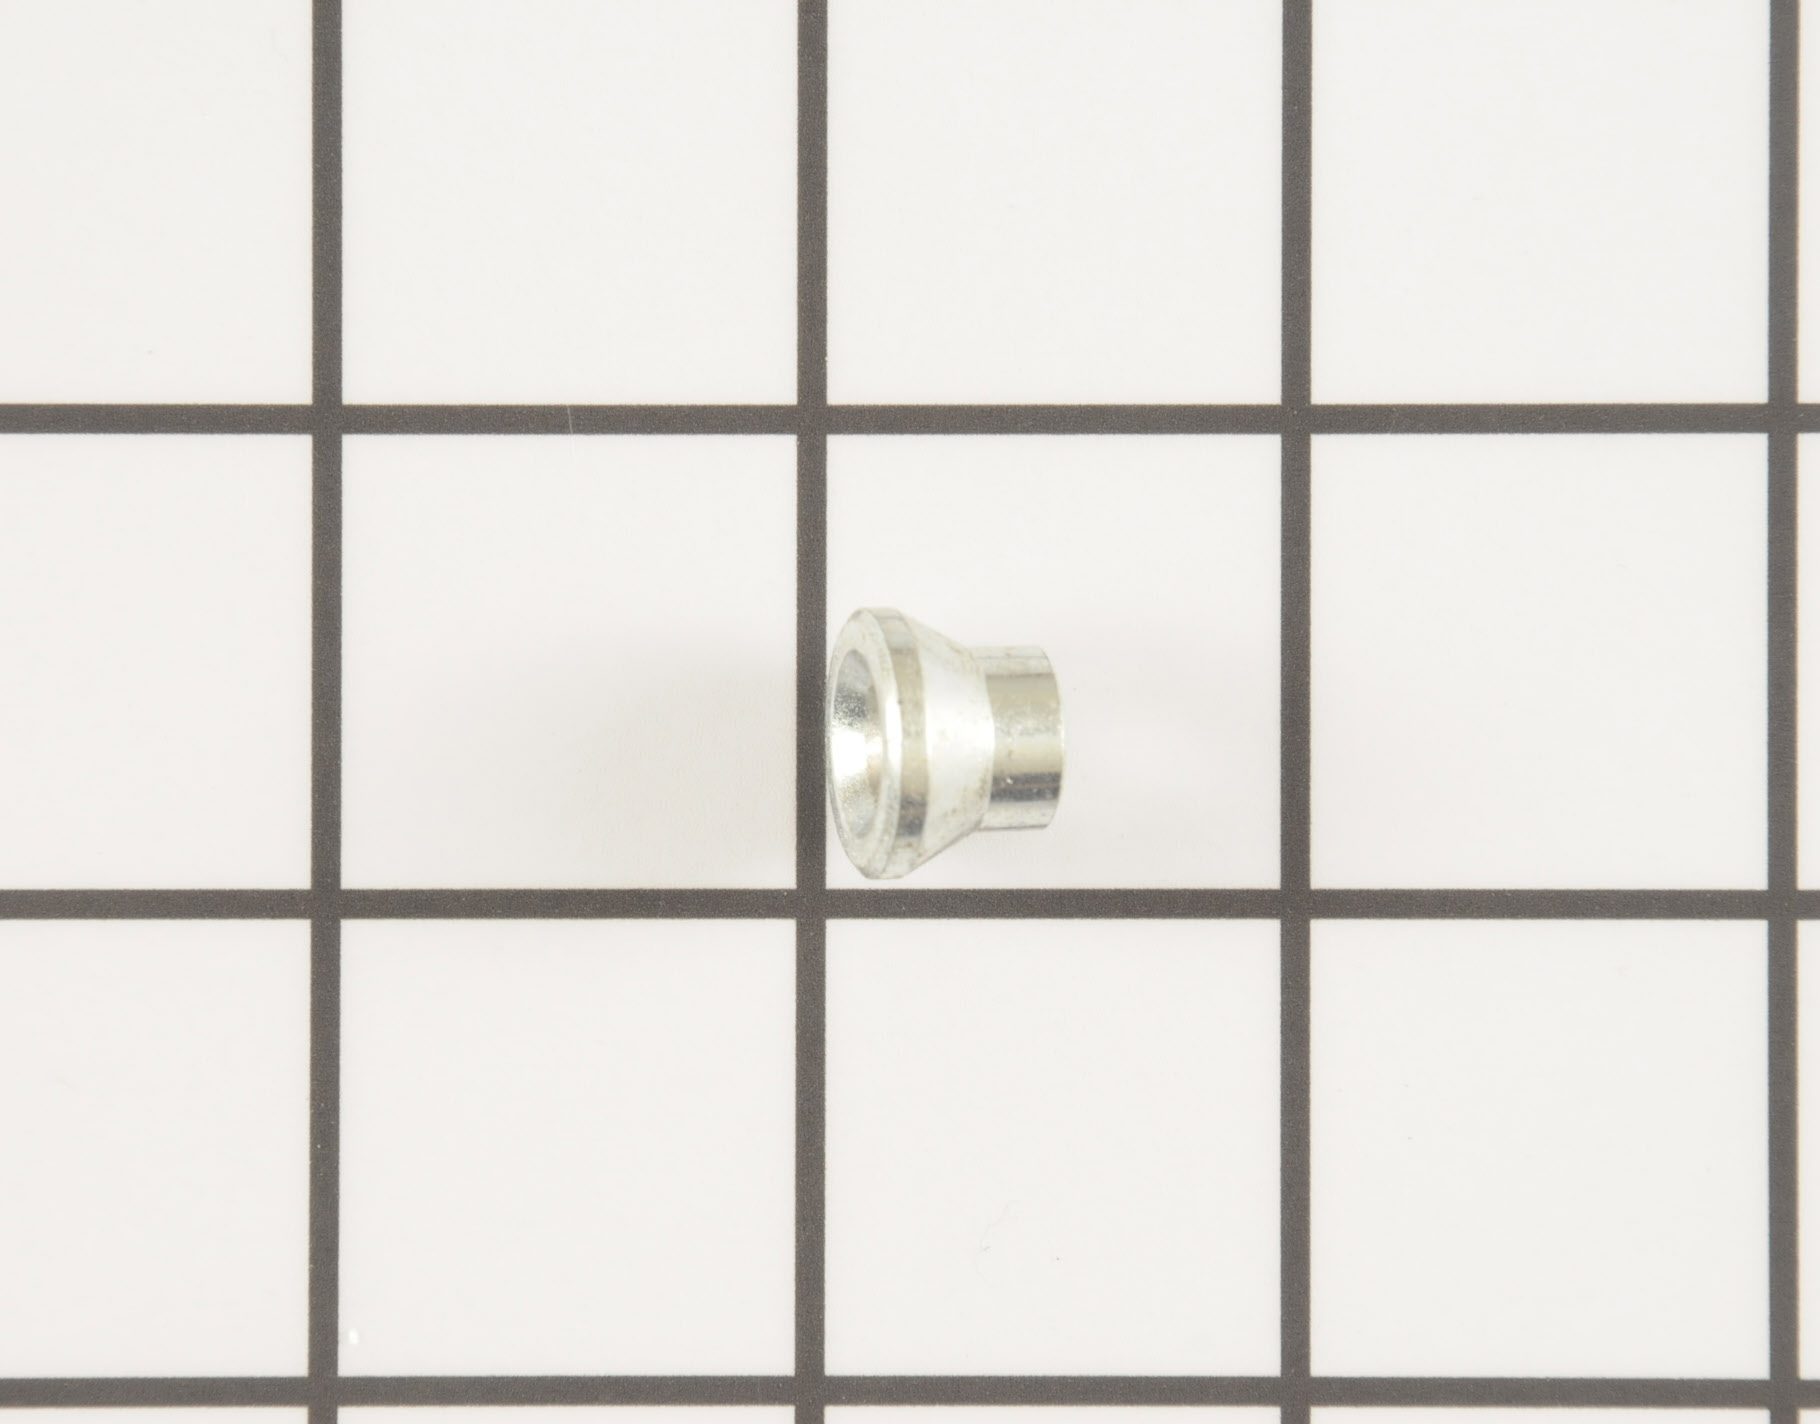 KitchenAid Refrigerator Part # WP67006113 - Stud Bolt